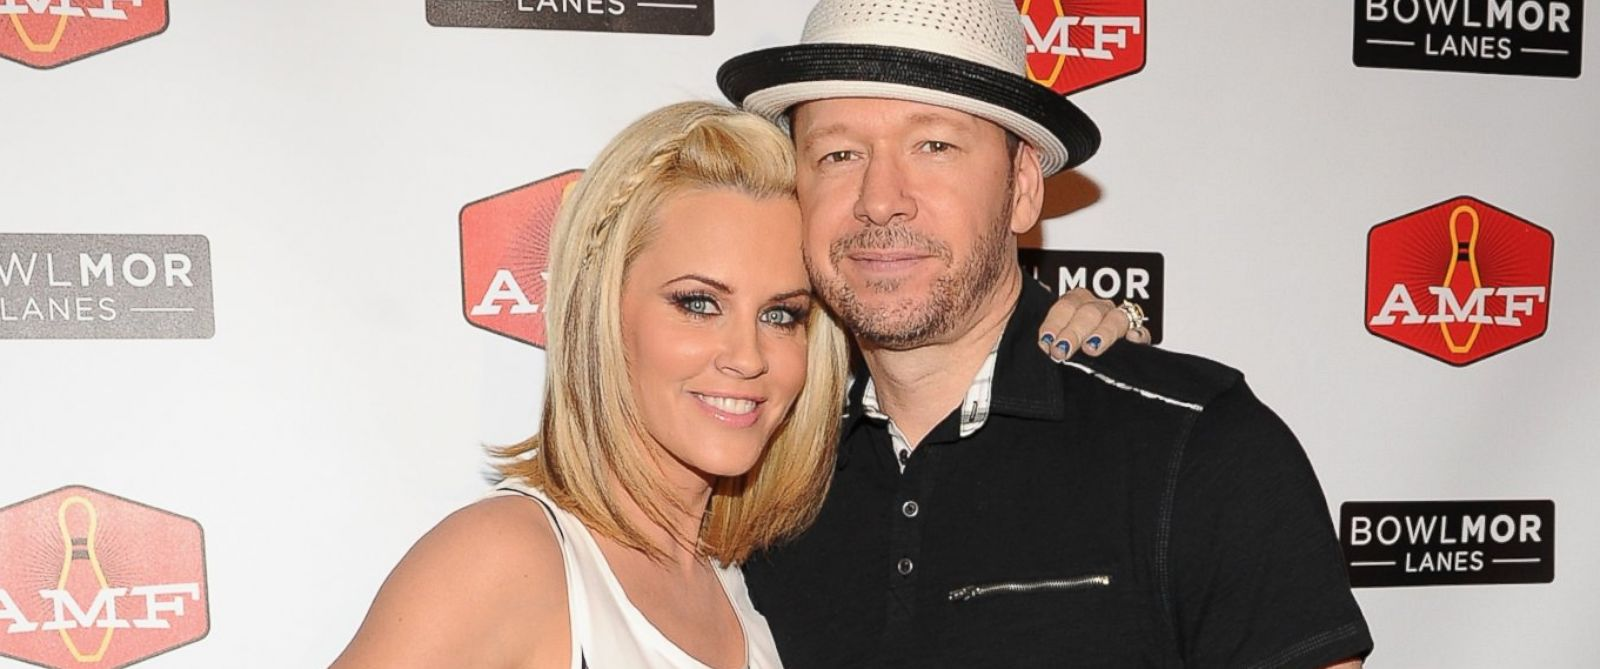 PHOTO: Jenny McCarthy and Donnie Wahlberg on June 21, 2014 in New York City.